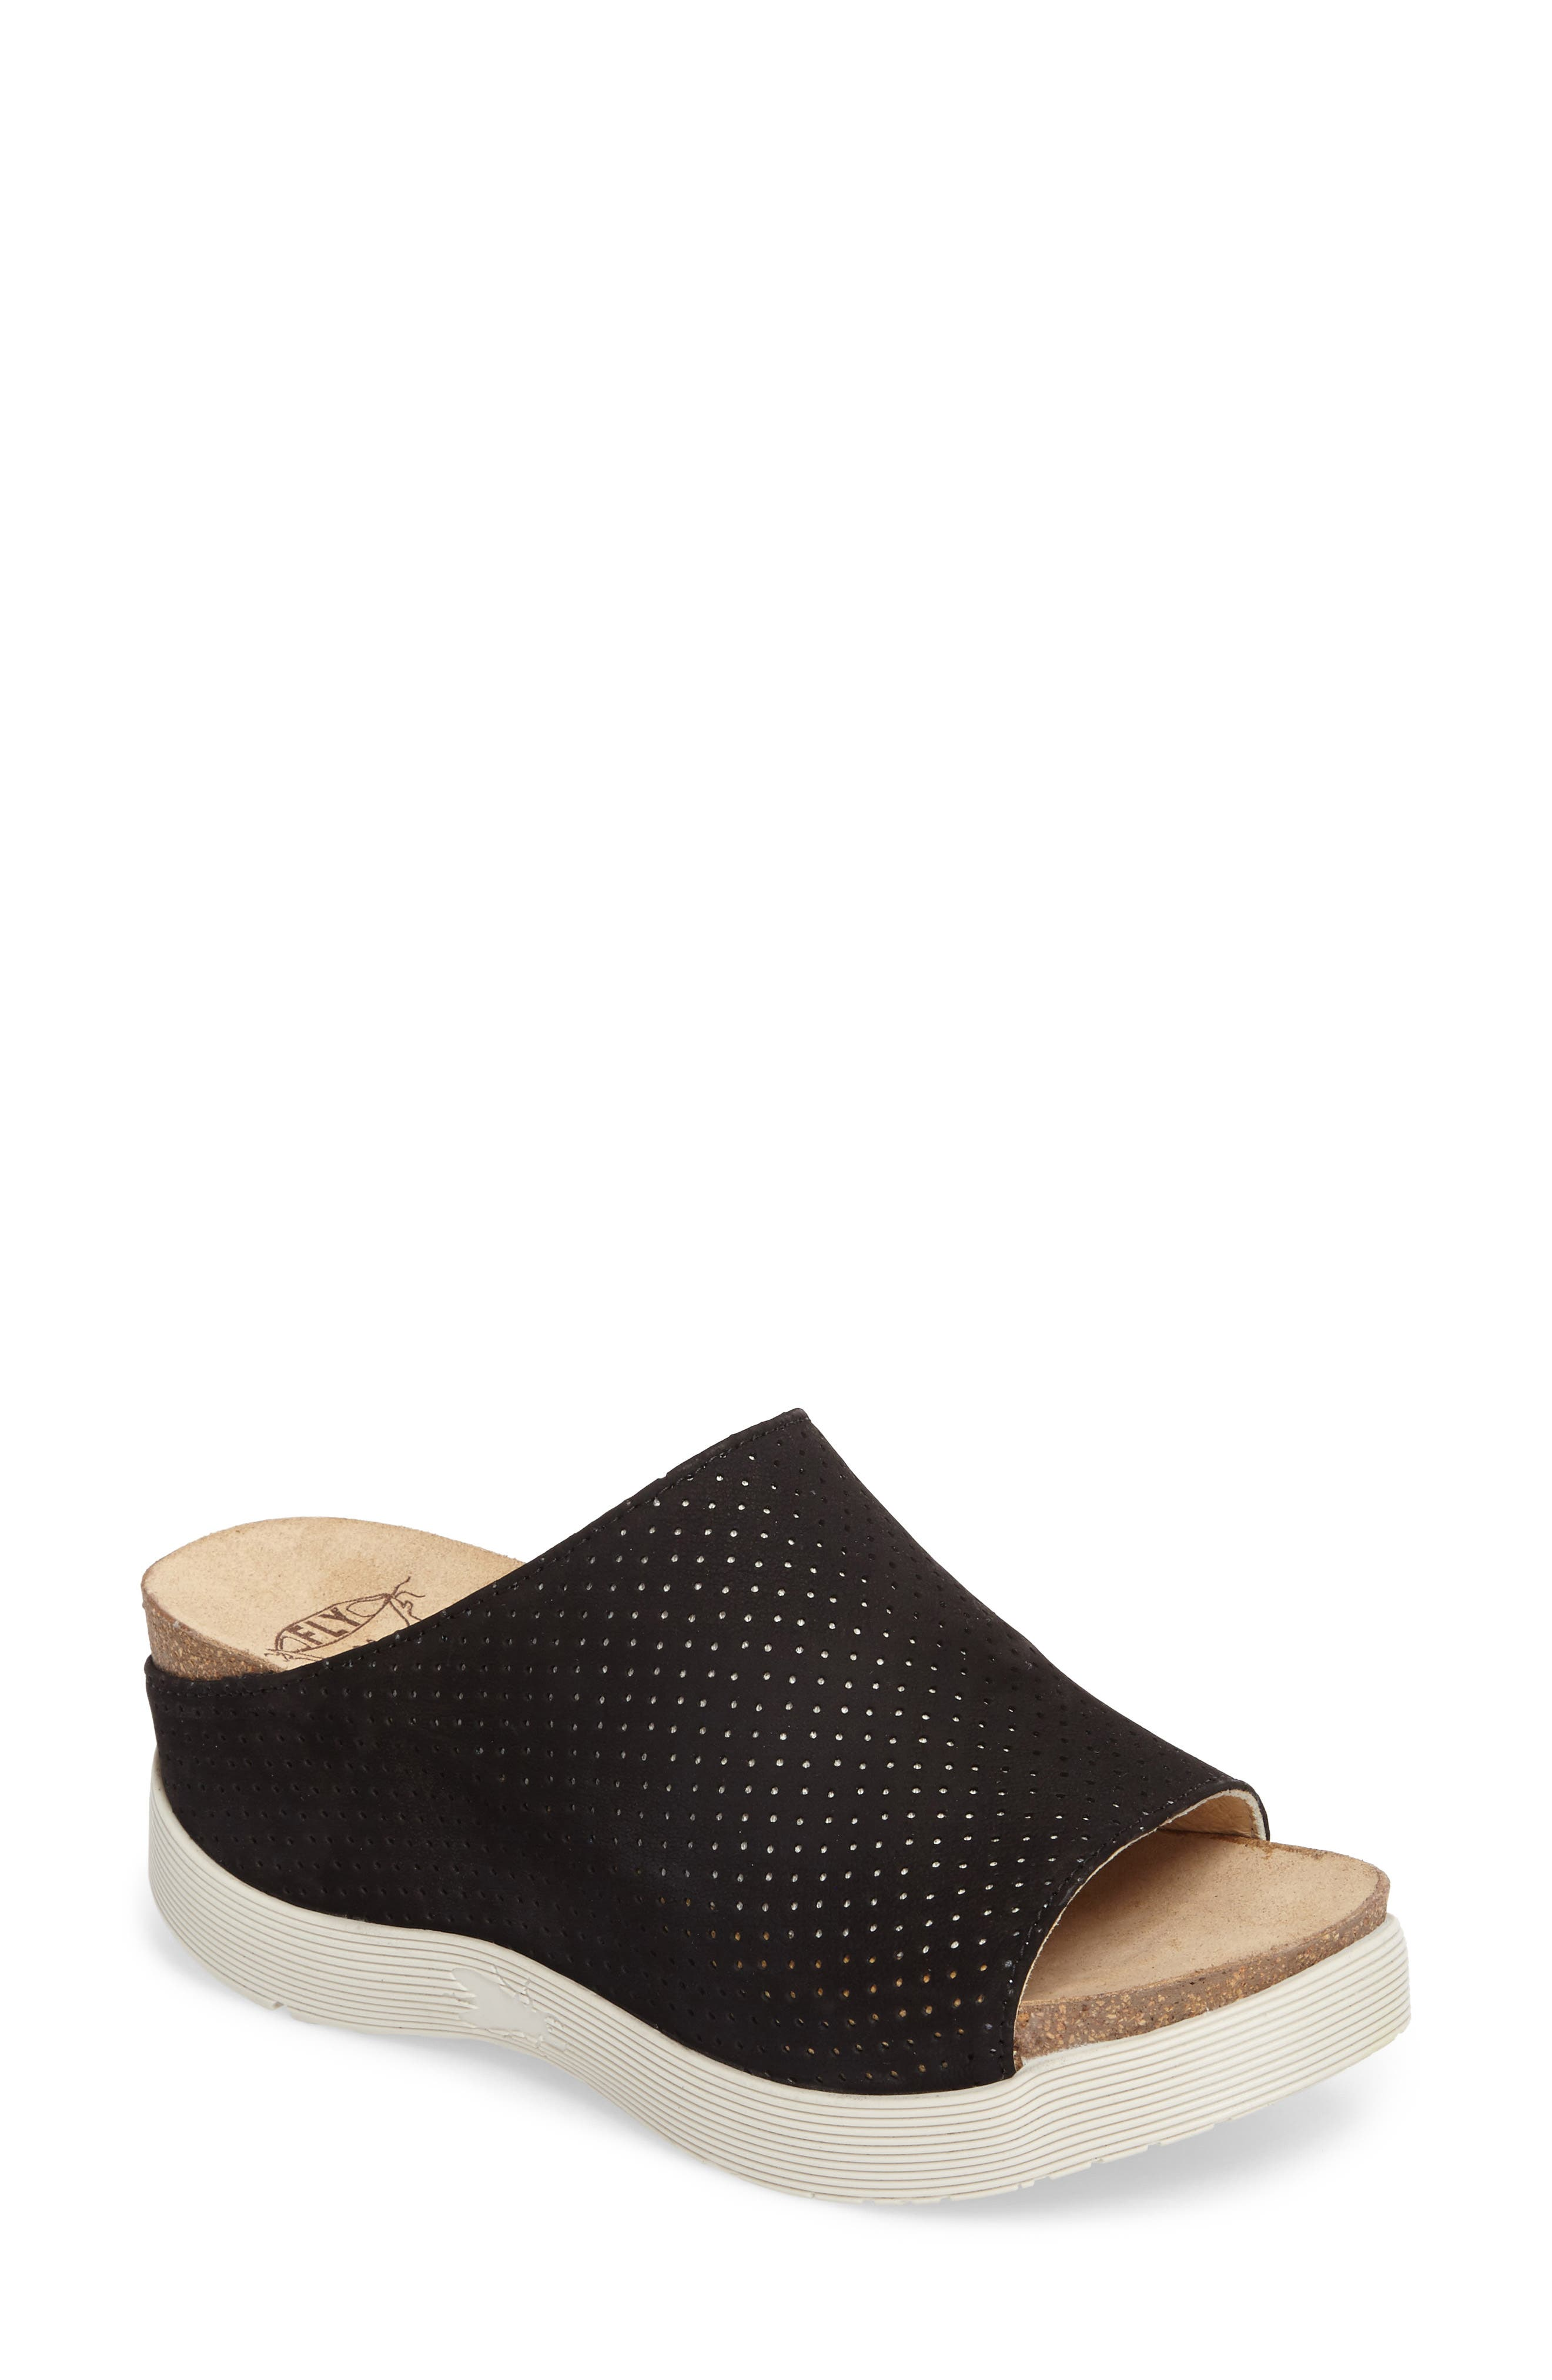 Fly London Whin Platform Sandal - Black